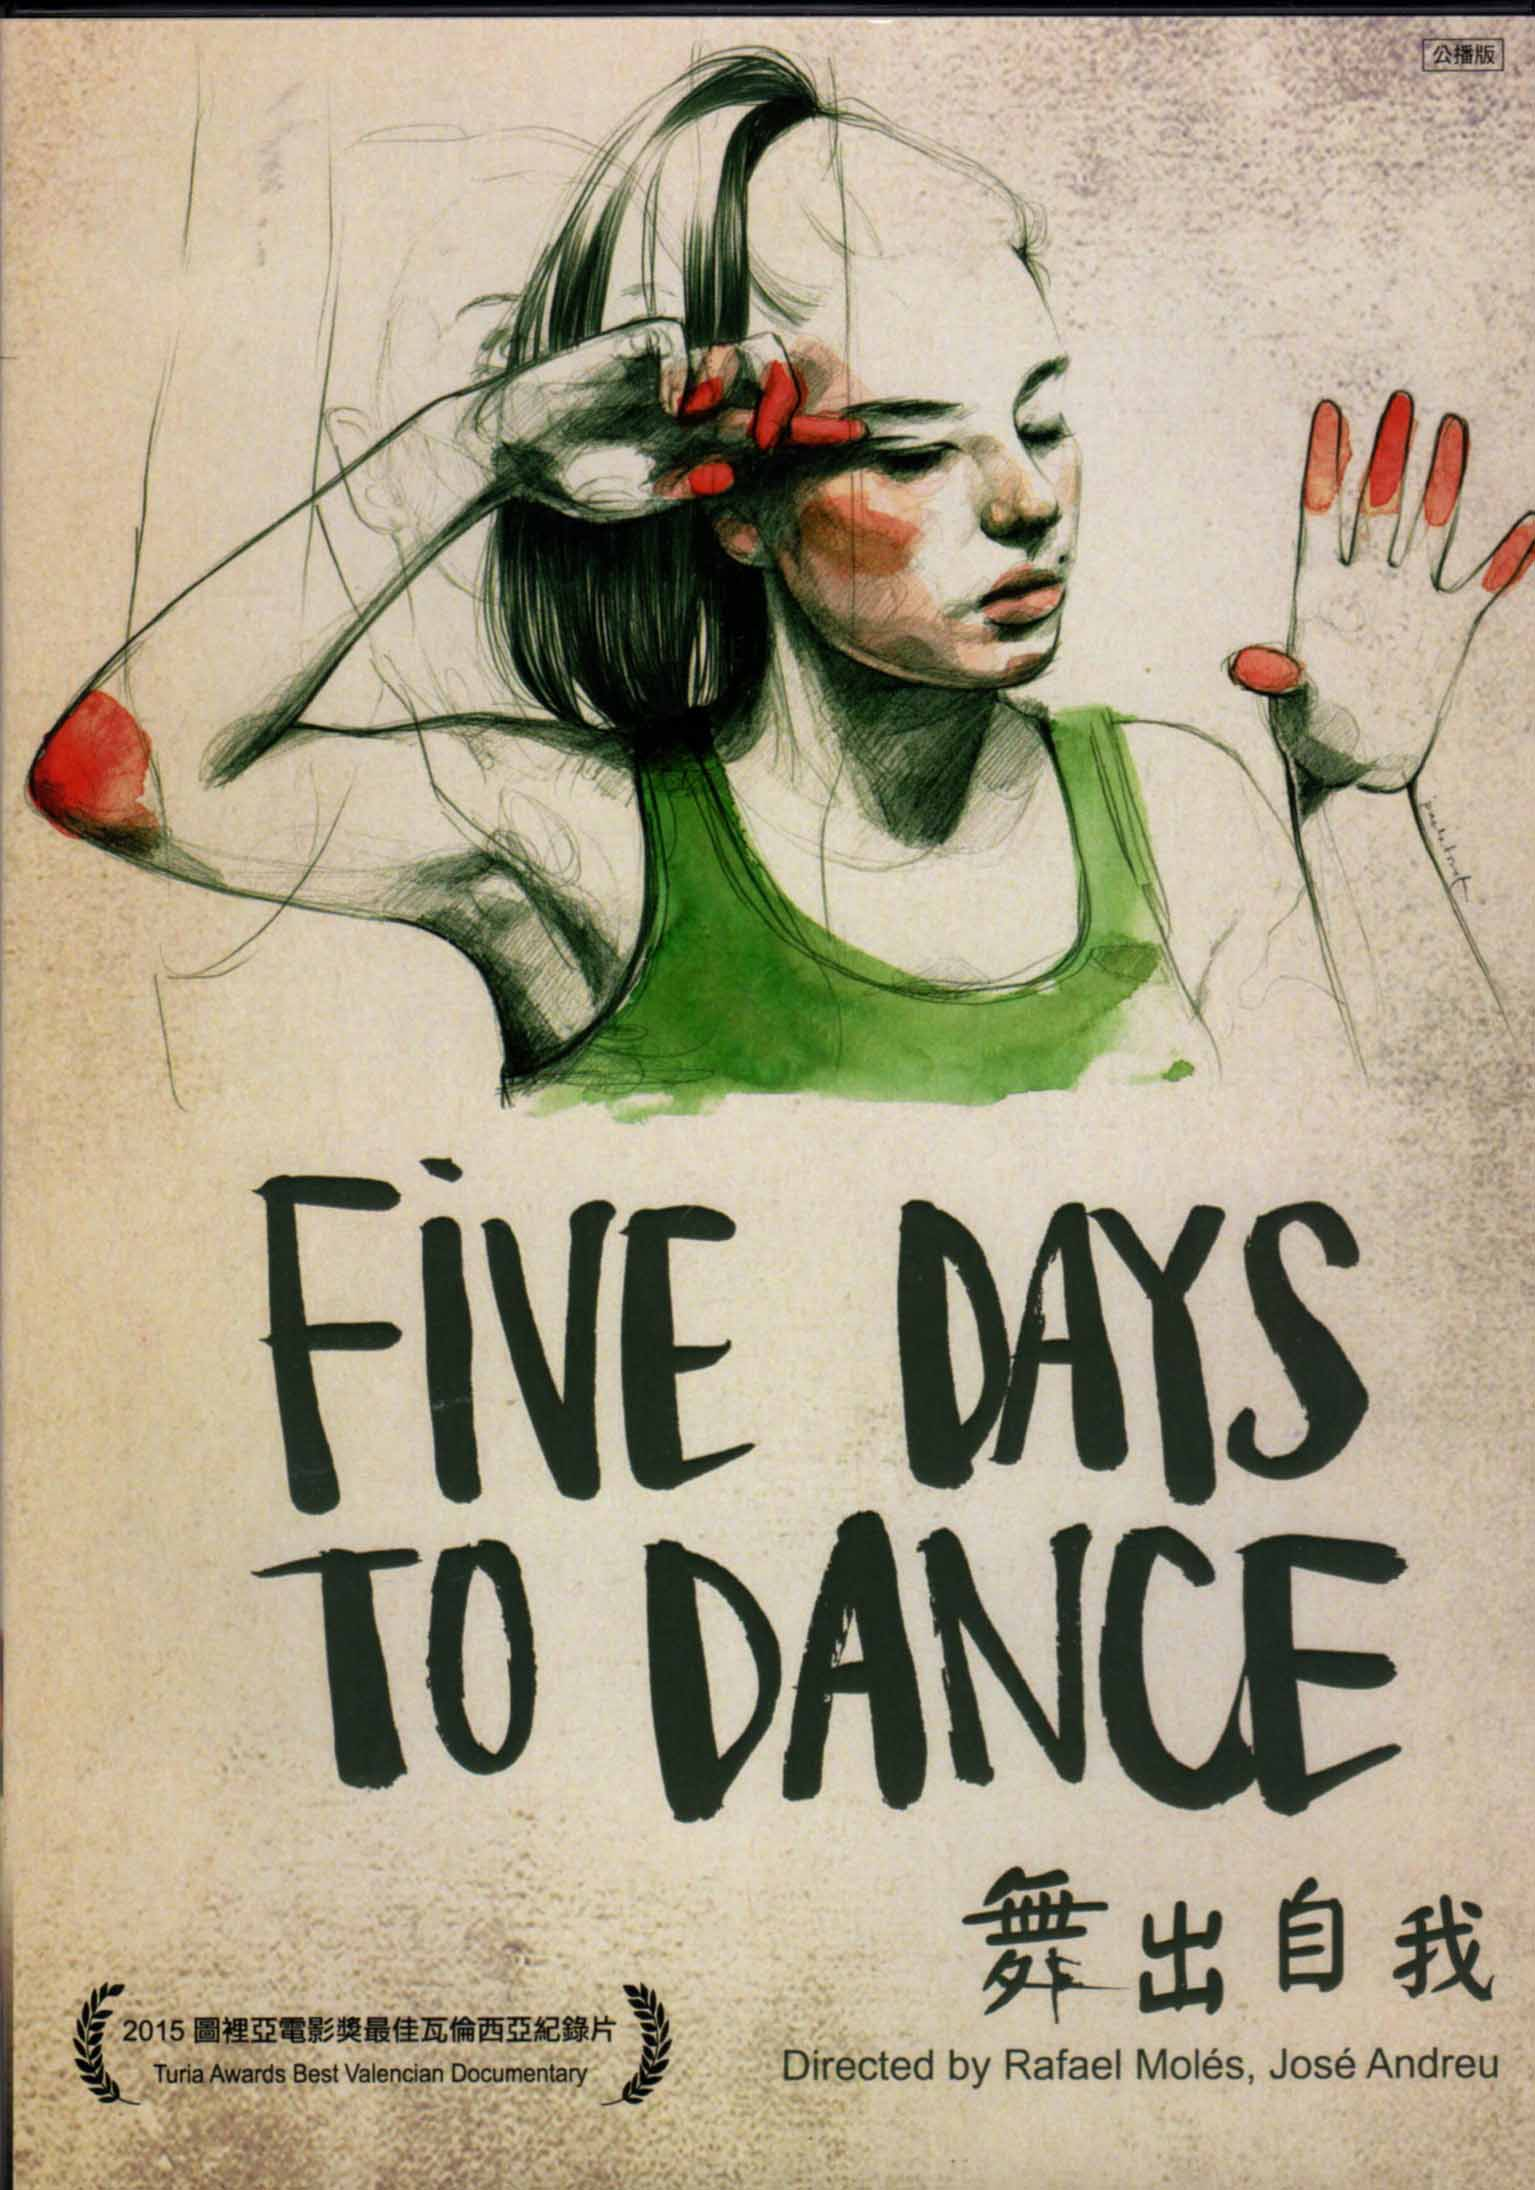 Five days to dance